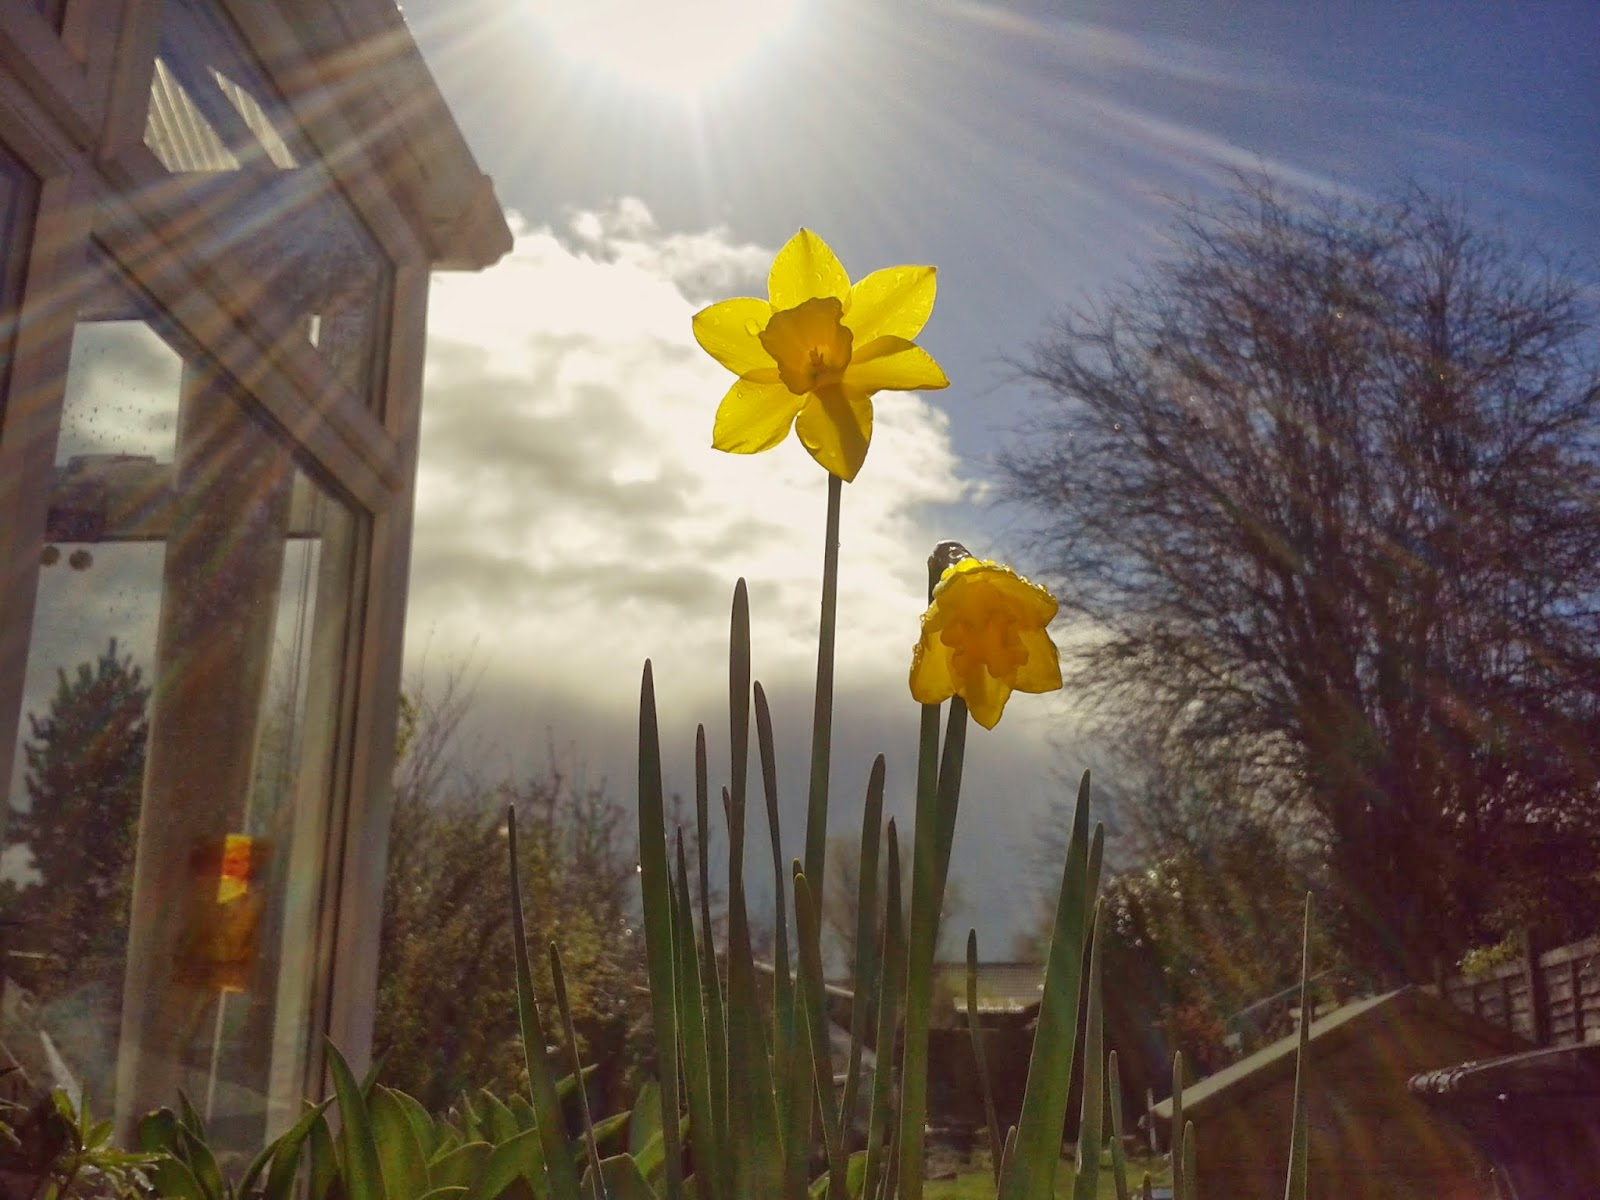 Project 365 day 82 - Spring daffodils // 76sunflowers